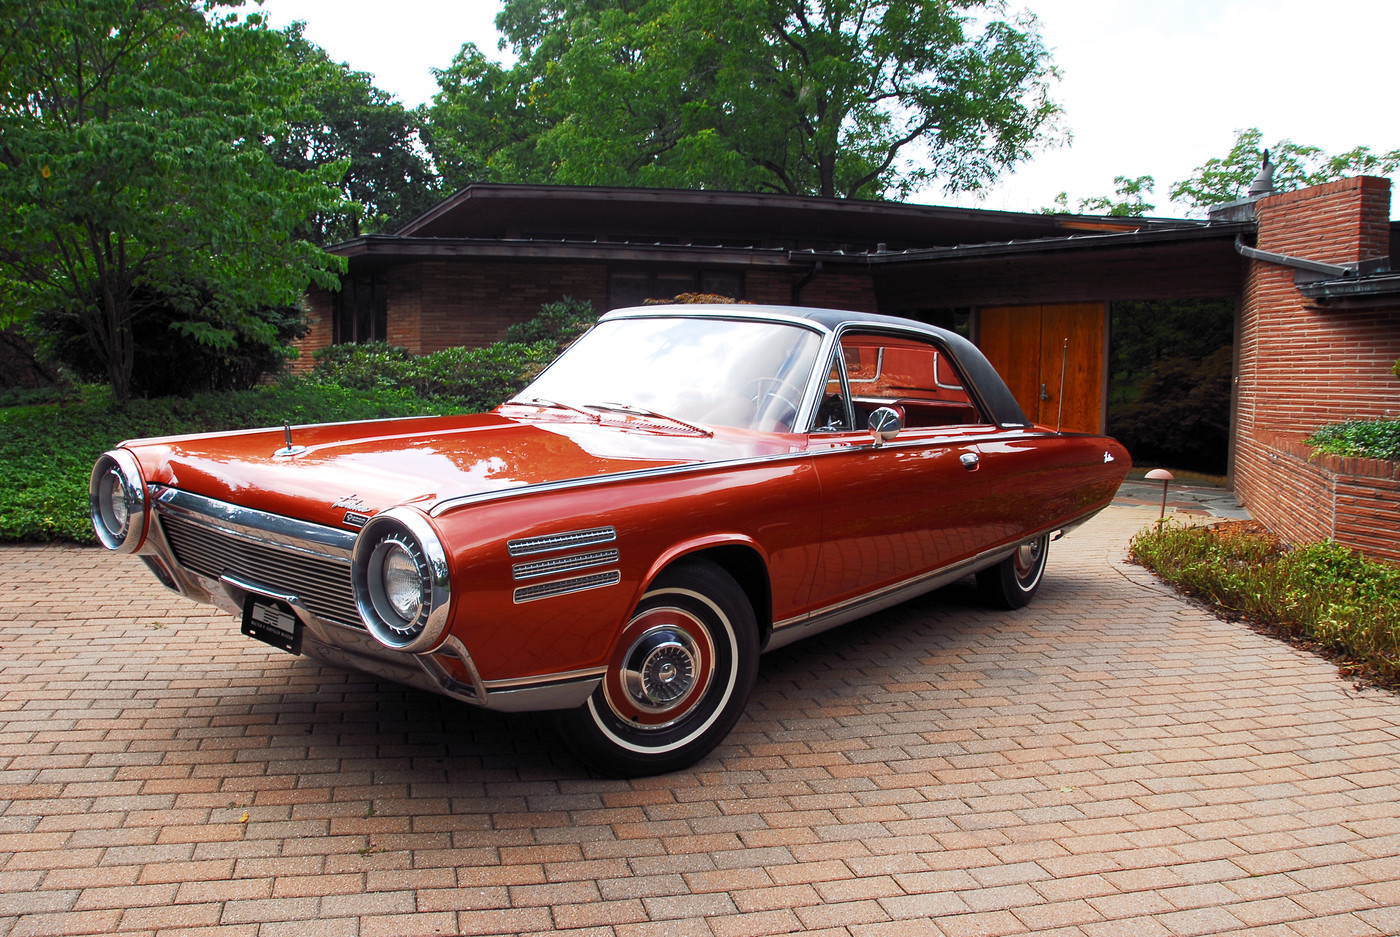 08 1963 Chrysler Ghia Turbine Car front wide-angle view at sixties-era modern home